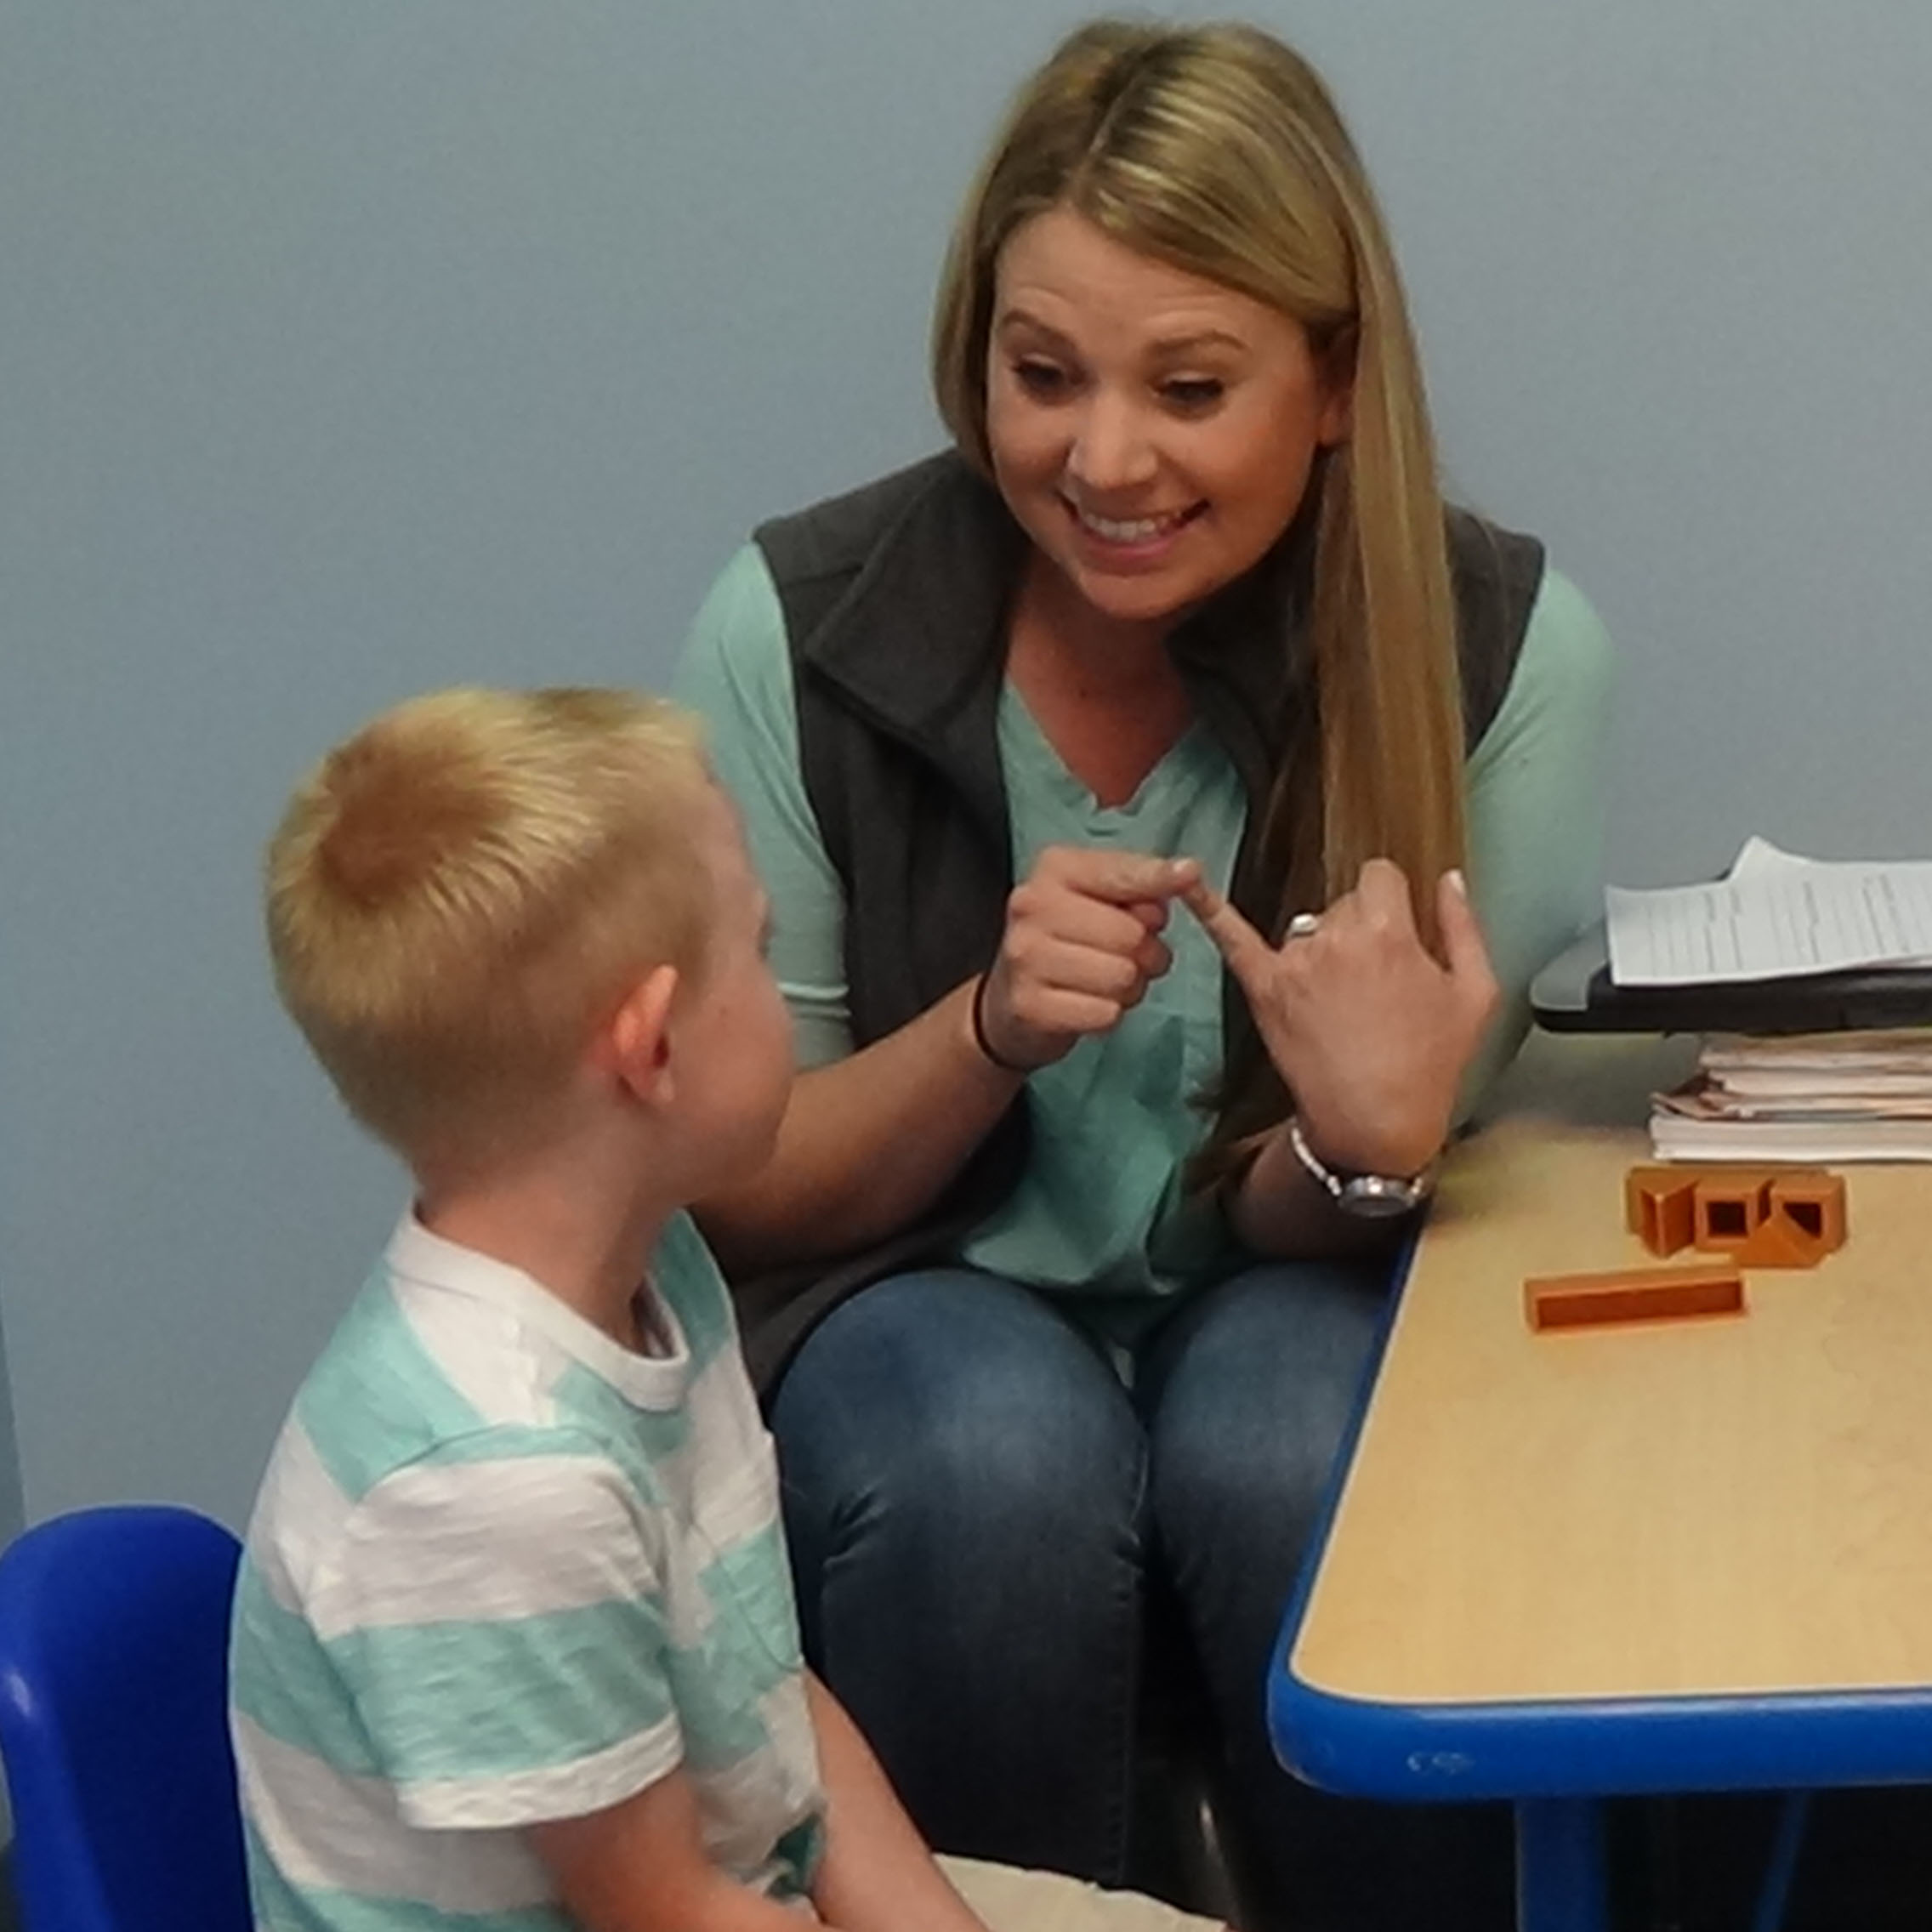 Speech Therapist and Child